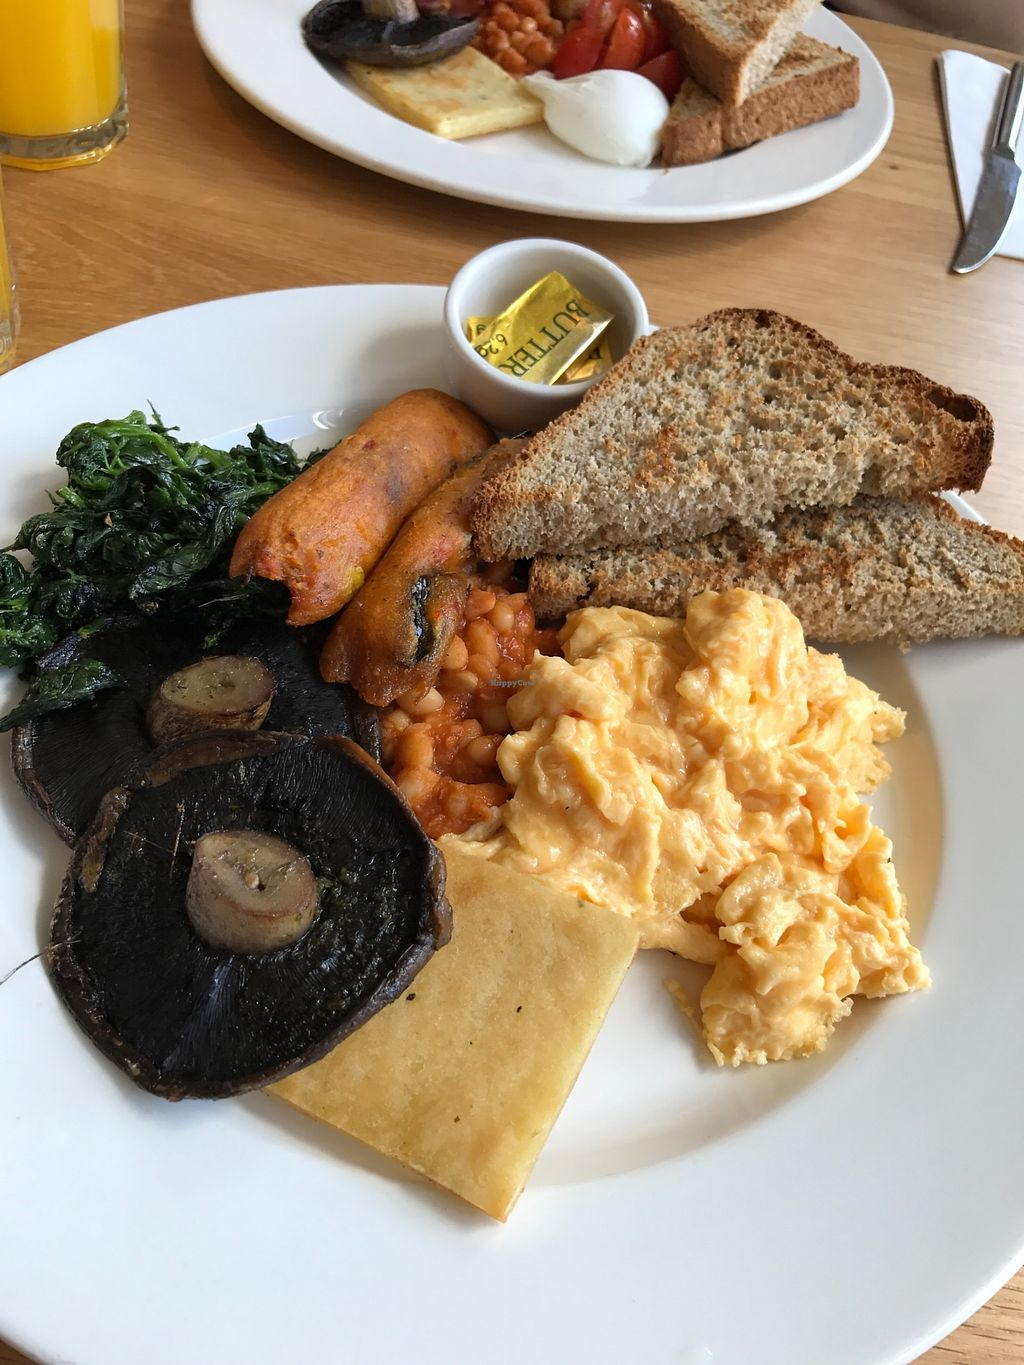 """Photo of Loudons Cafe and Bakery  by <a href=""""/members/profile/AshleighC"""">AshleighC</a> <br/>BEFORE I WAS VEGAN This is the full vegetarian breakfast served at Loudons.  Best one I've had <br/> February 5, 2018  - <a href='/contact/abuse/image/105784/355400'>Report</a>"""